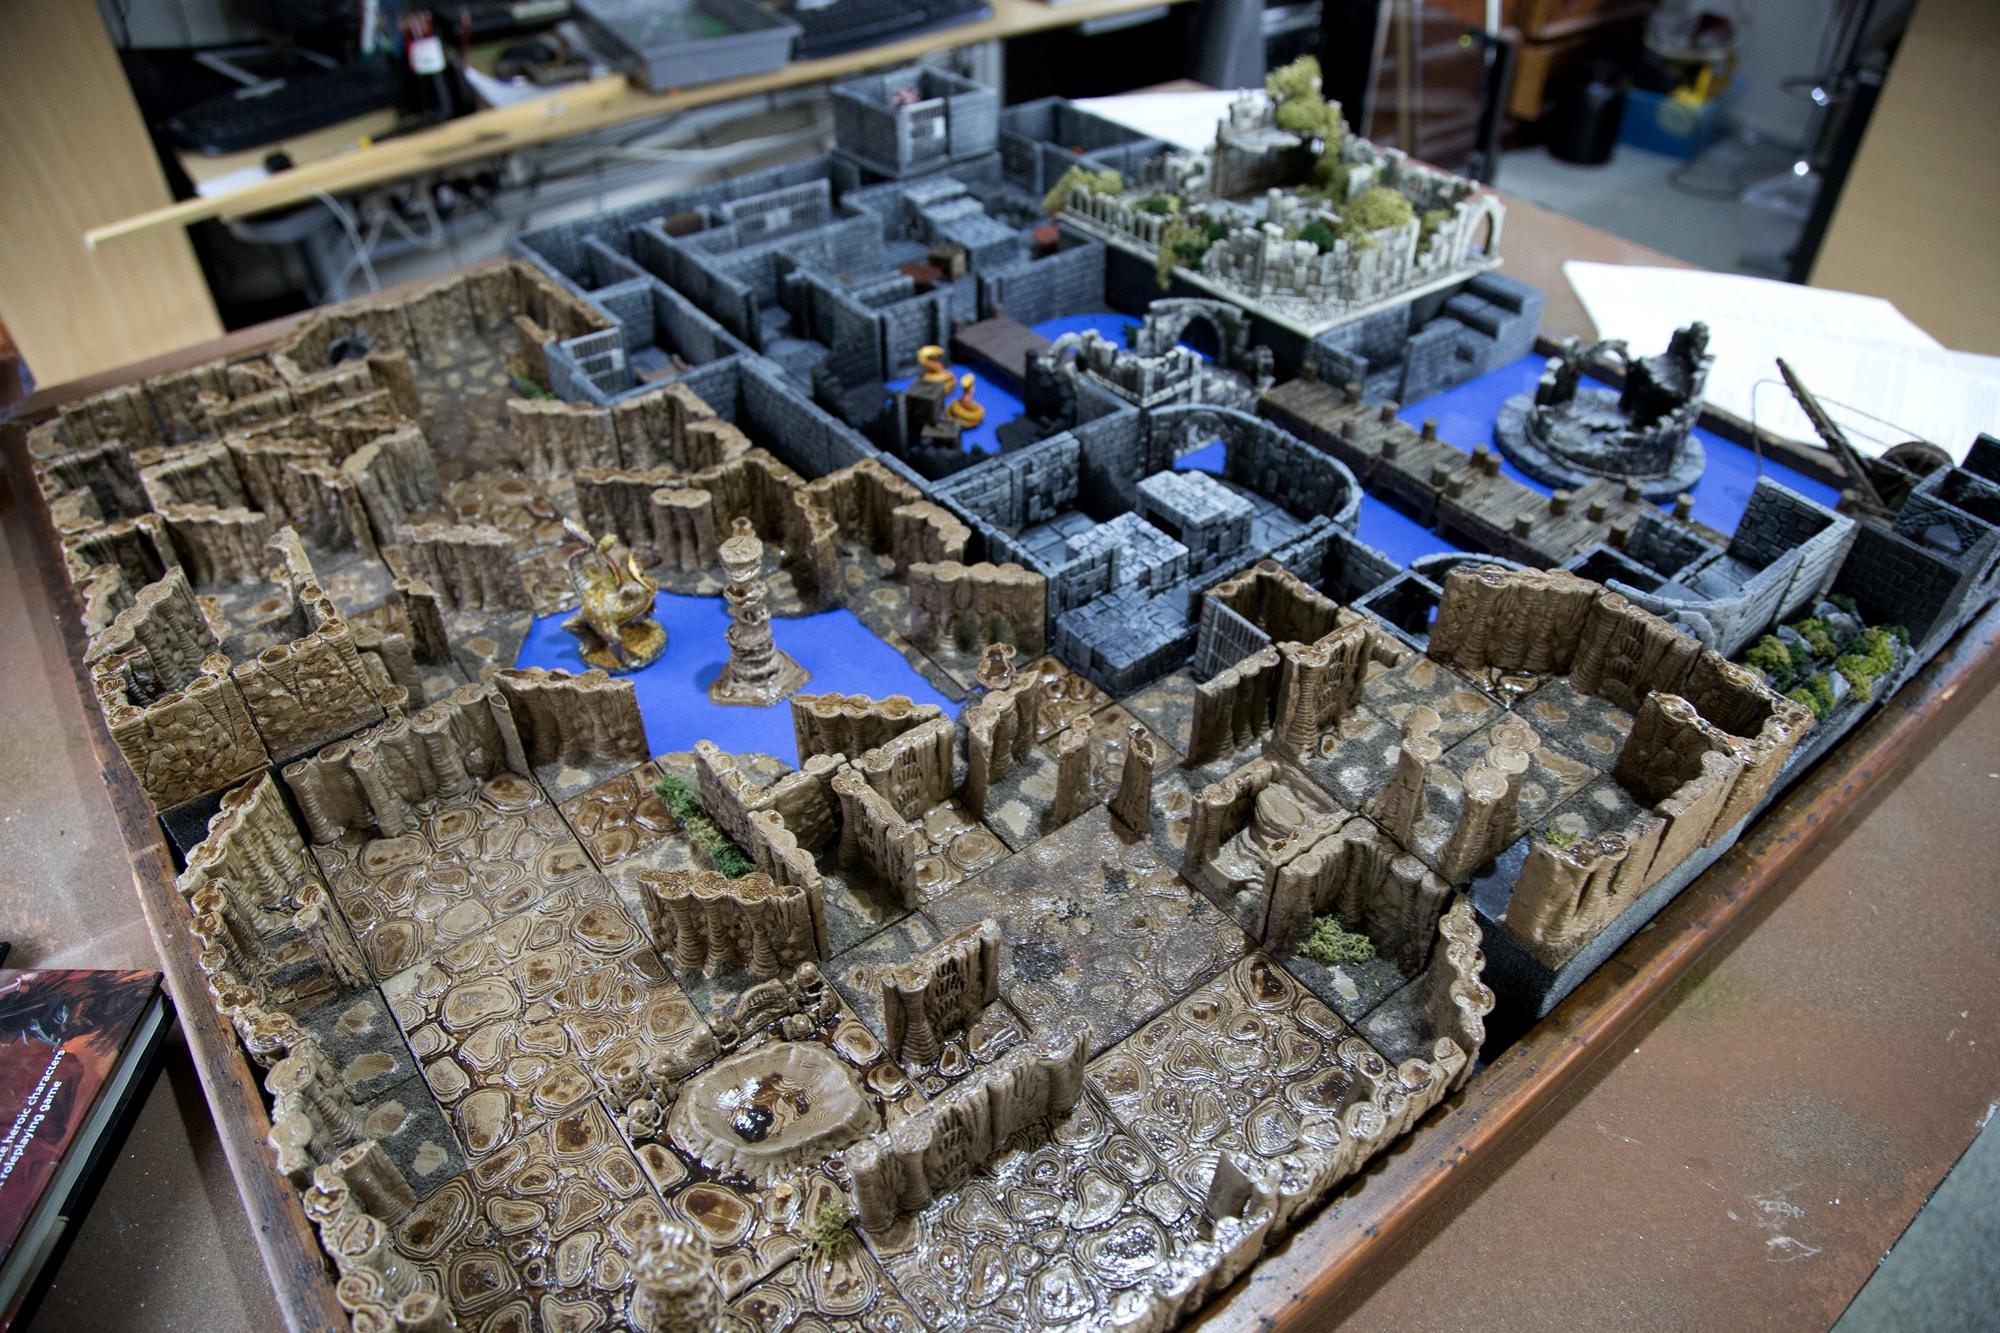 5e, Bolt Action, Dungeons And Dragons, Flames Of War, Frostgrave, Warhammer 40,000